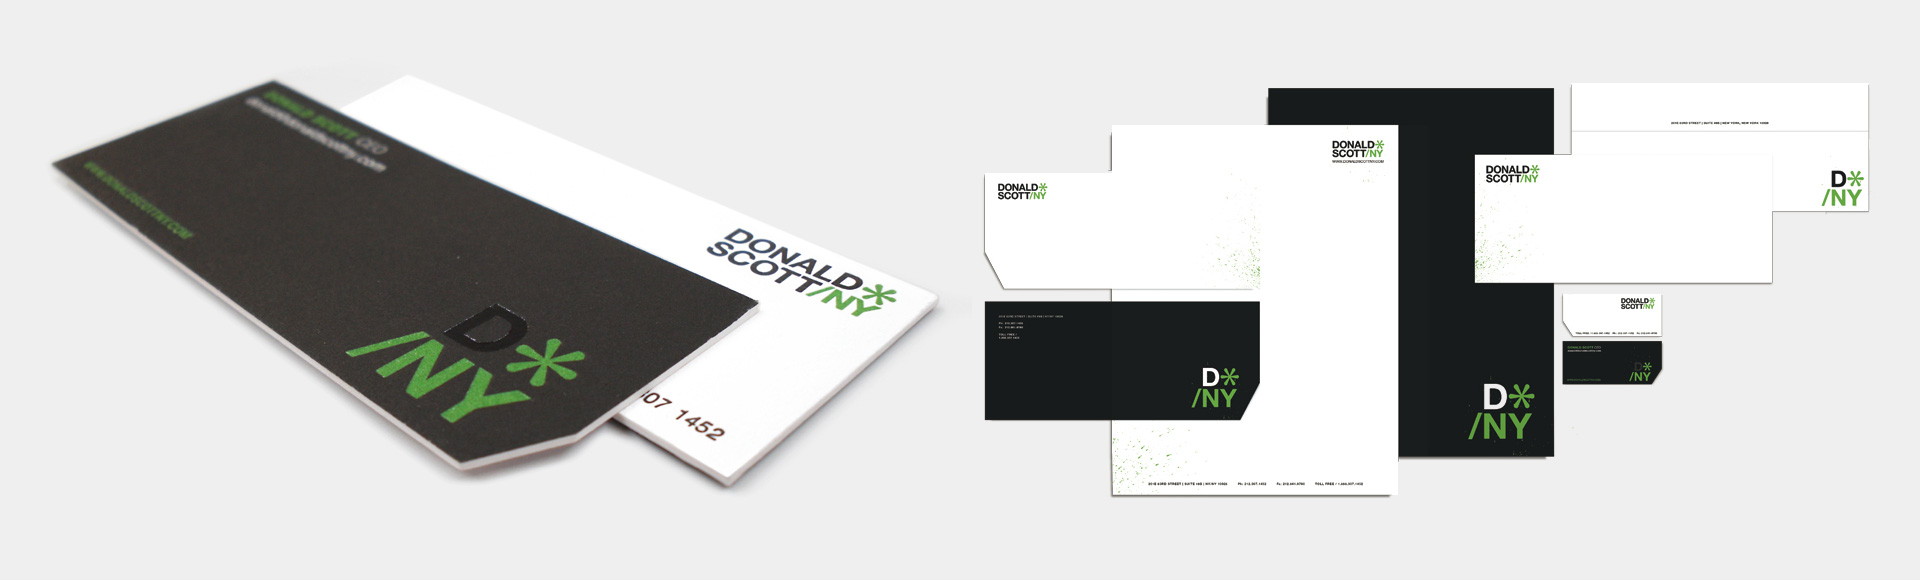 Donald Scott printed stationery, letterhead, business card, envelope, etc.